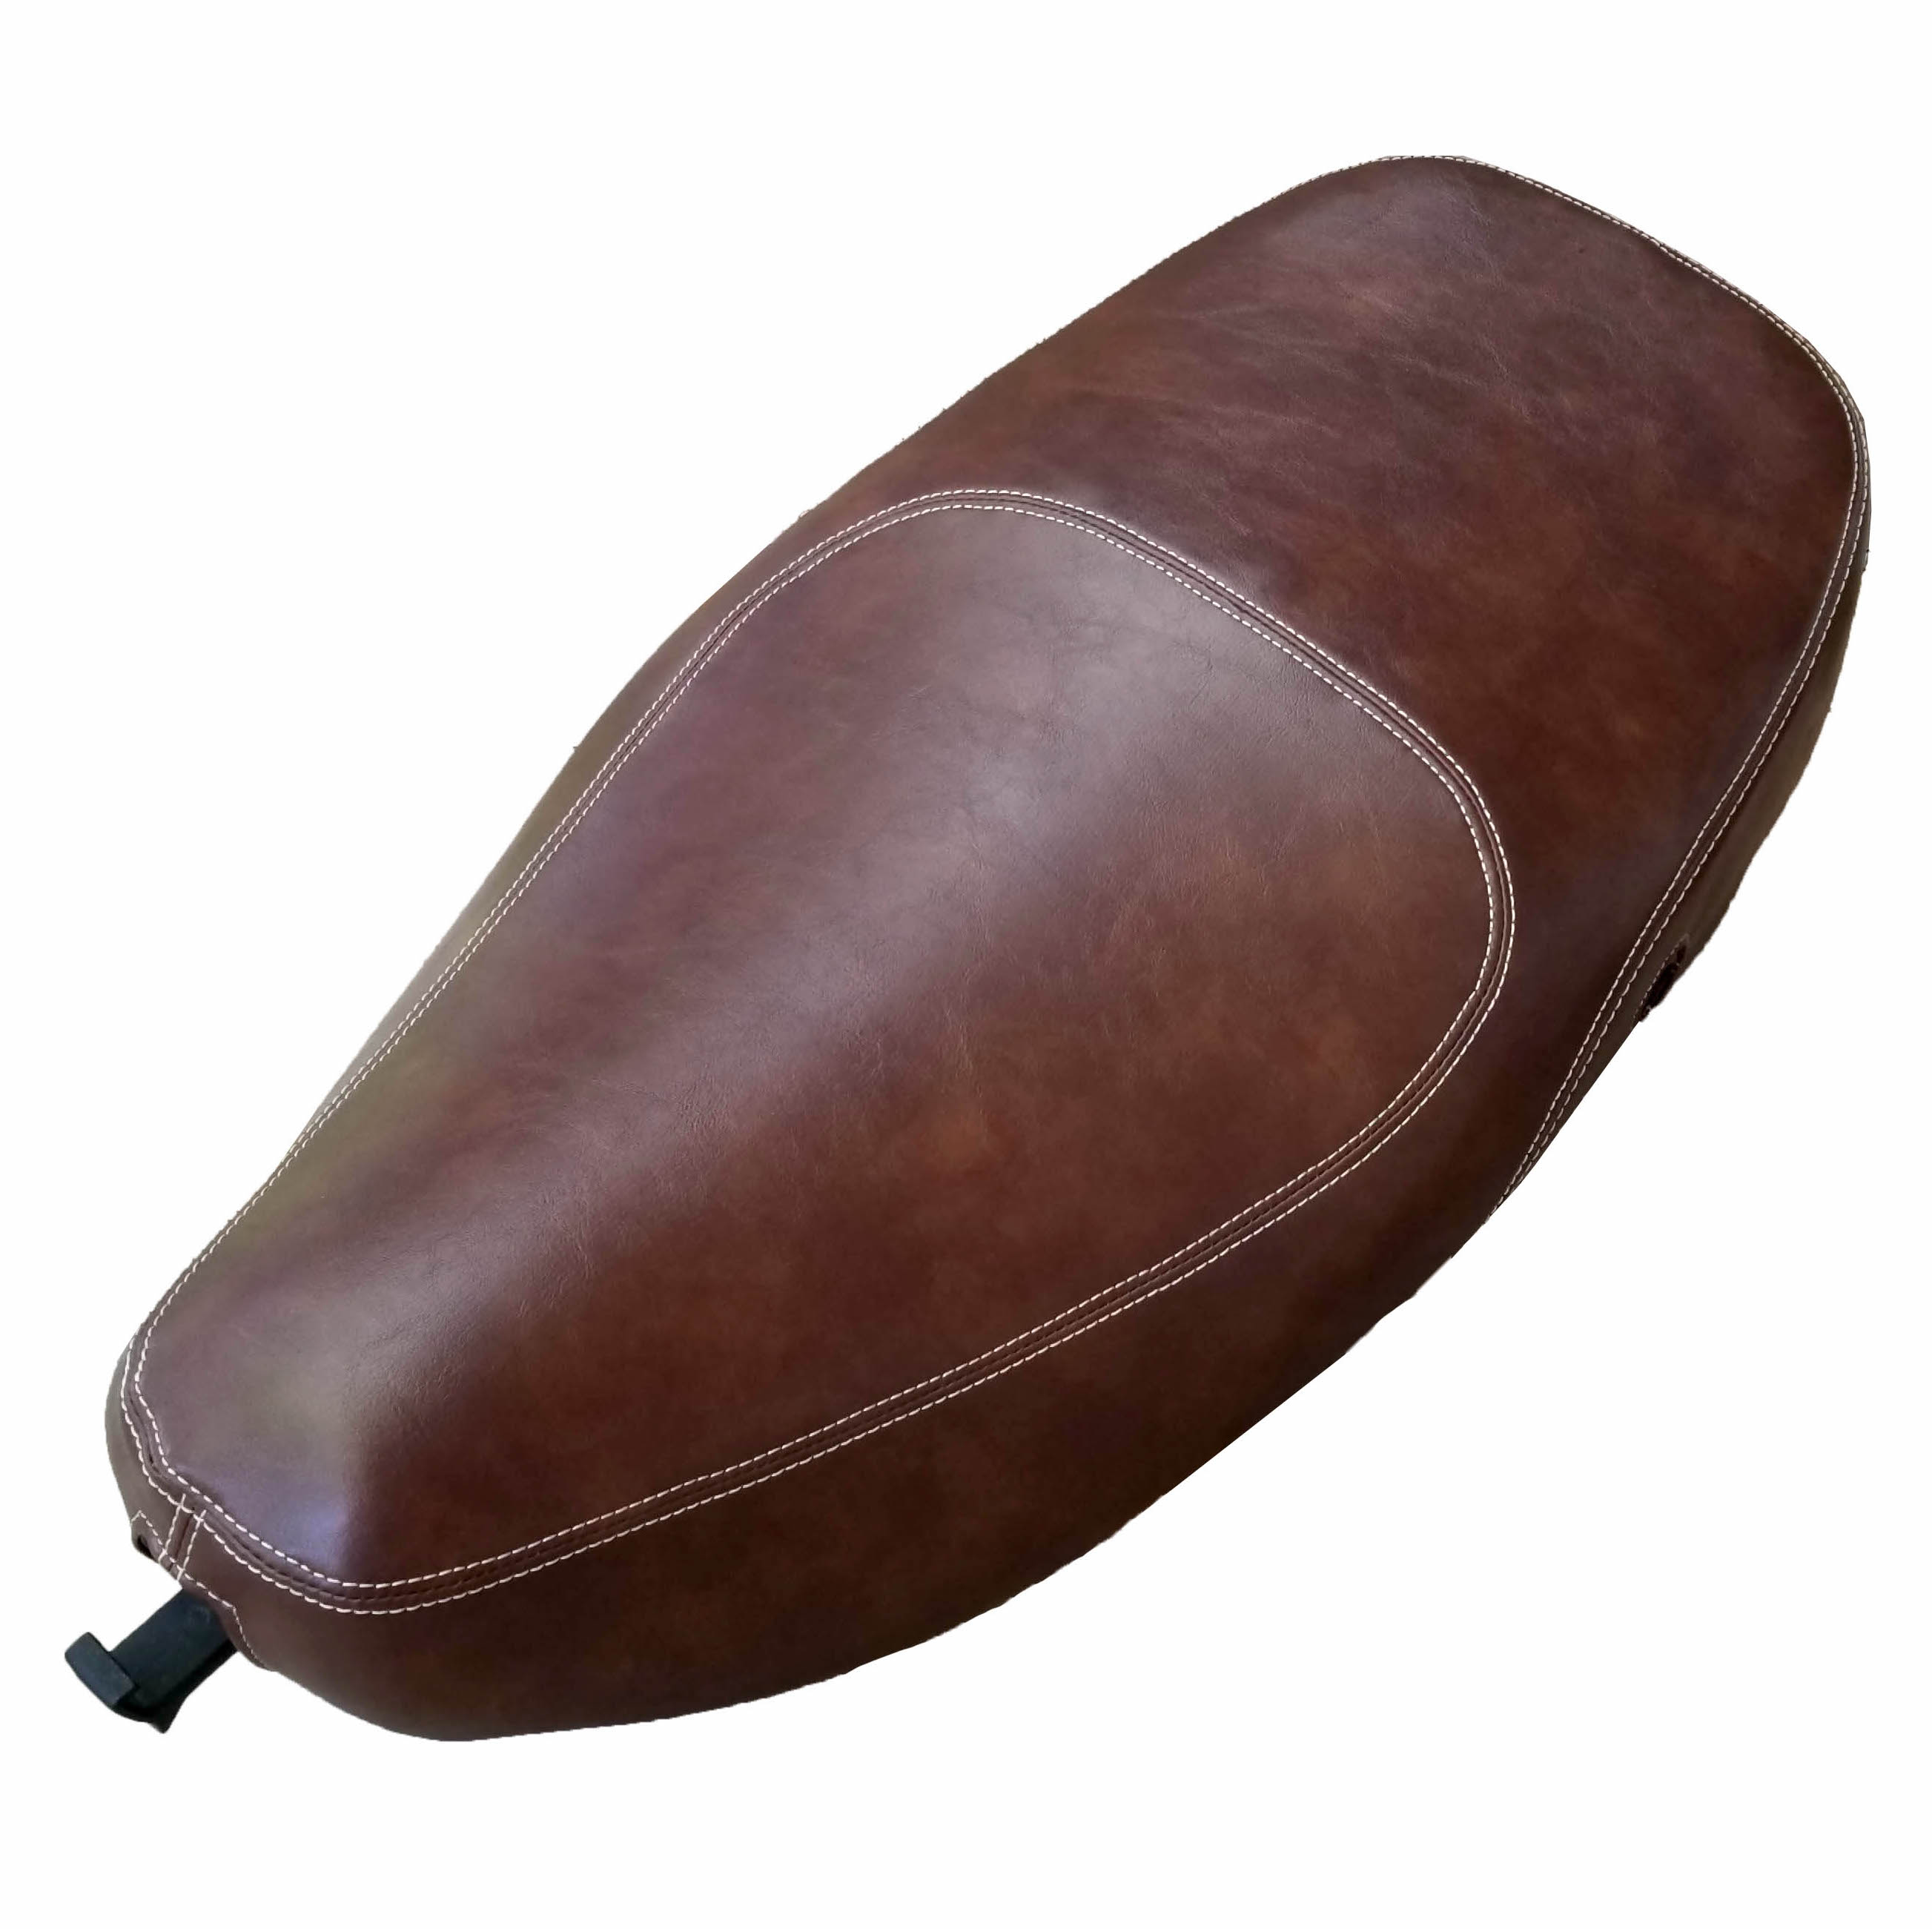 Vespa Lx 50 Vespa Lx 50 150 Brown Whiskey Oval Cut Faux Leather Seat Cover Cheeky Seats Scooter Seat Covers